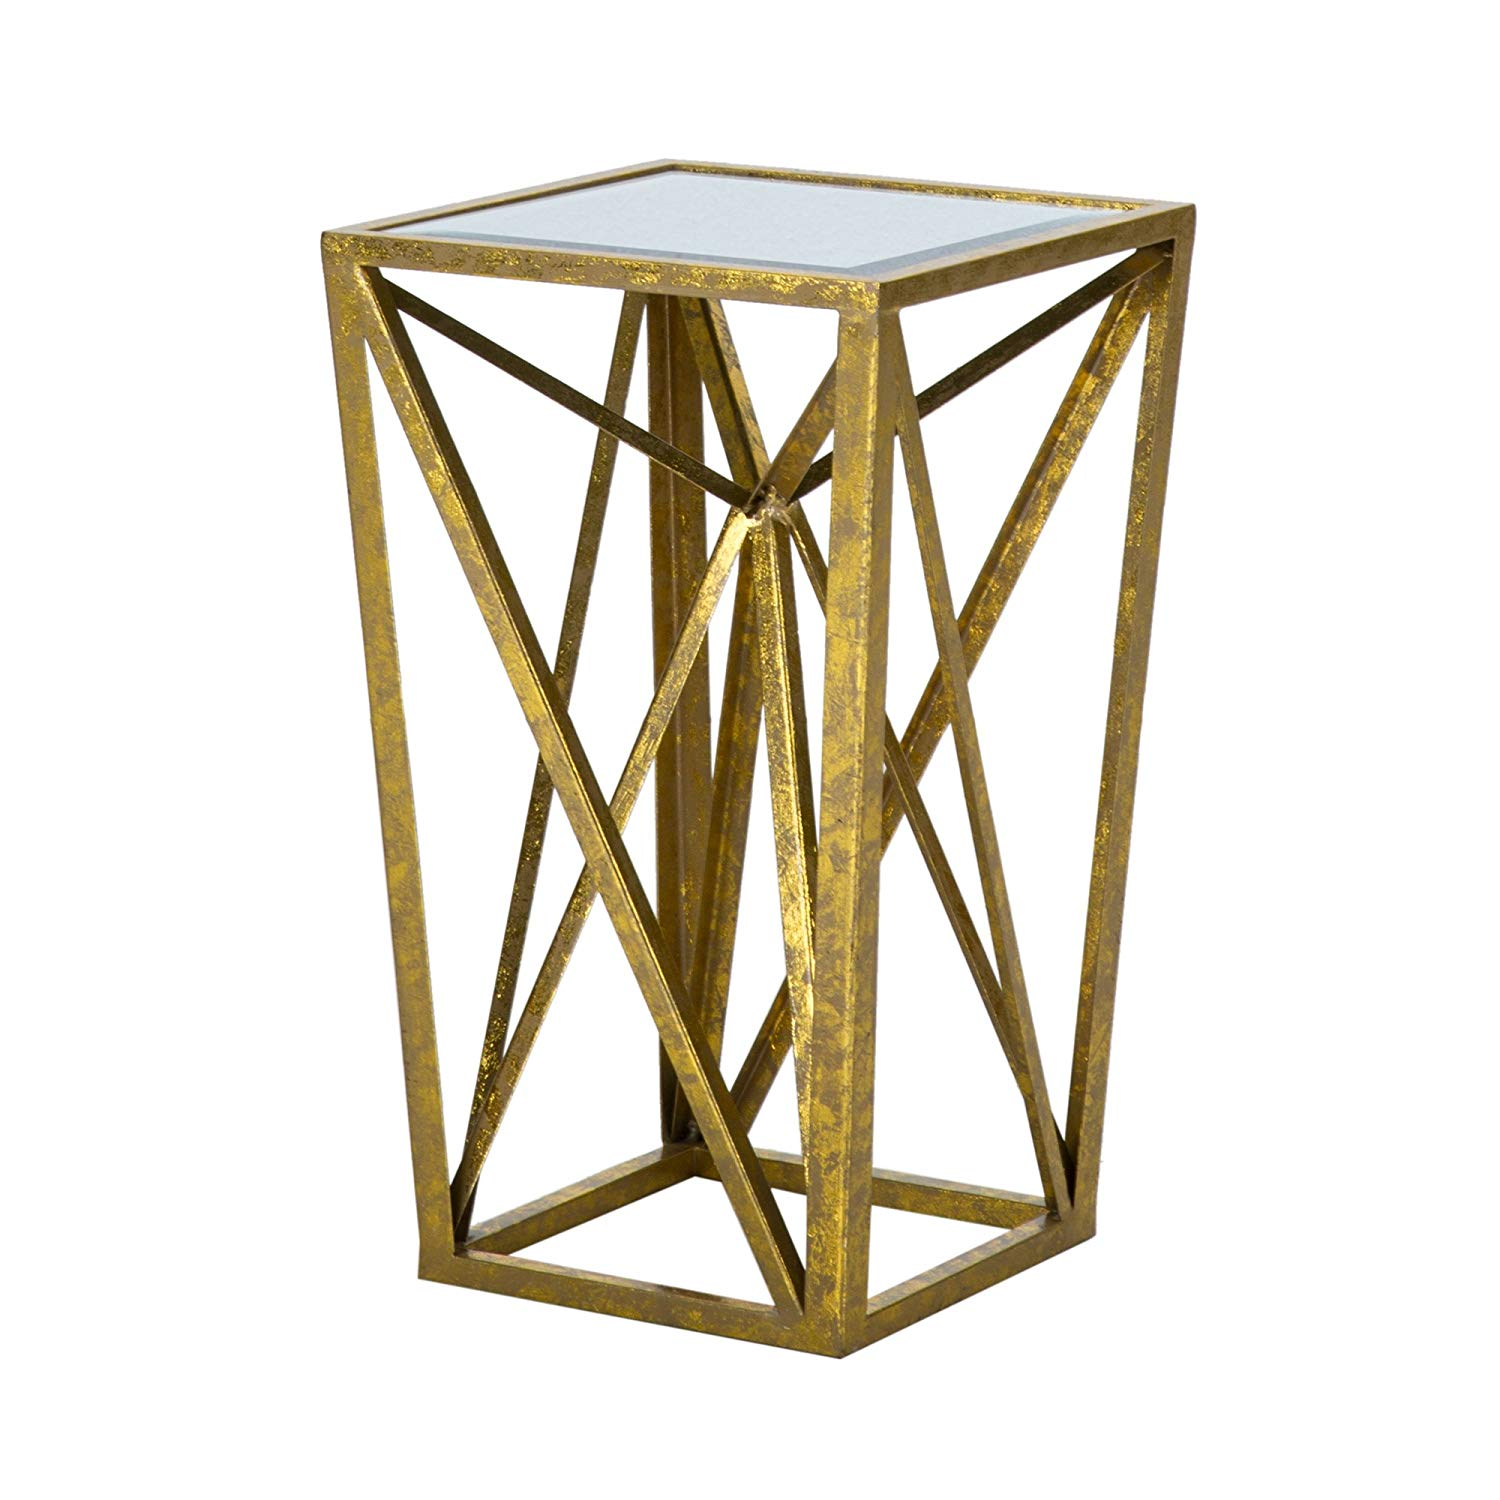 madison park zee accent tables mirror glass metal end side table gold angular design modern style piece top hollow round inch wide nightstand pedestal lamp classic lamps rustic